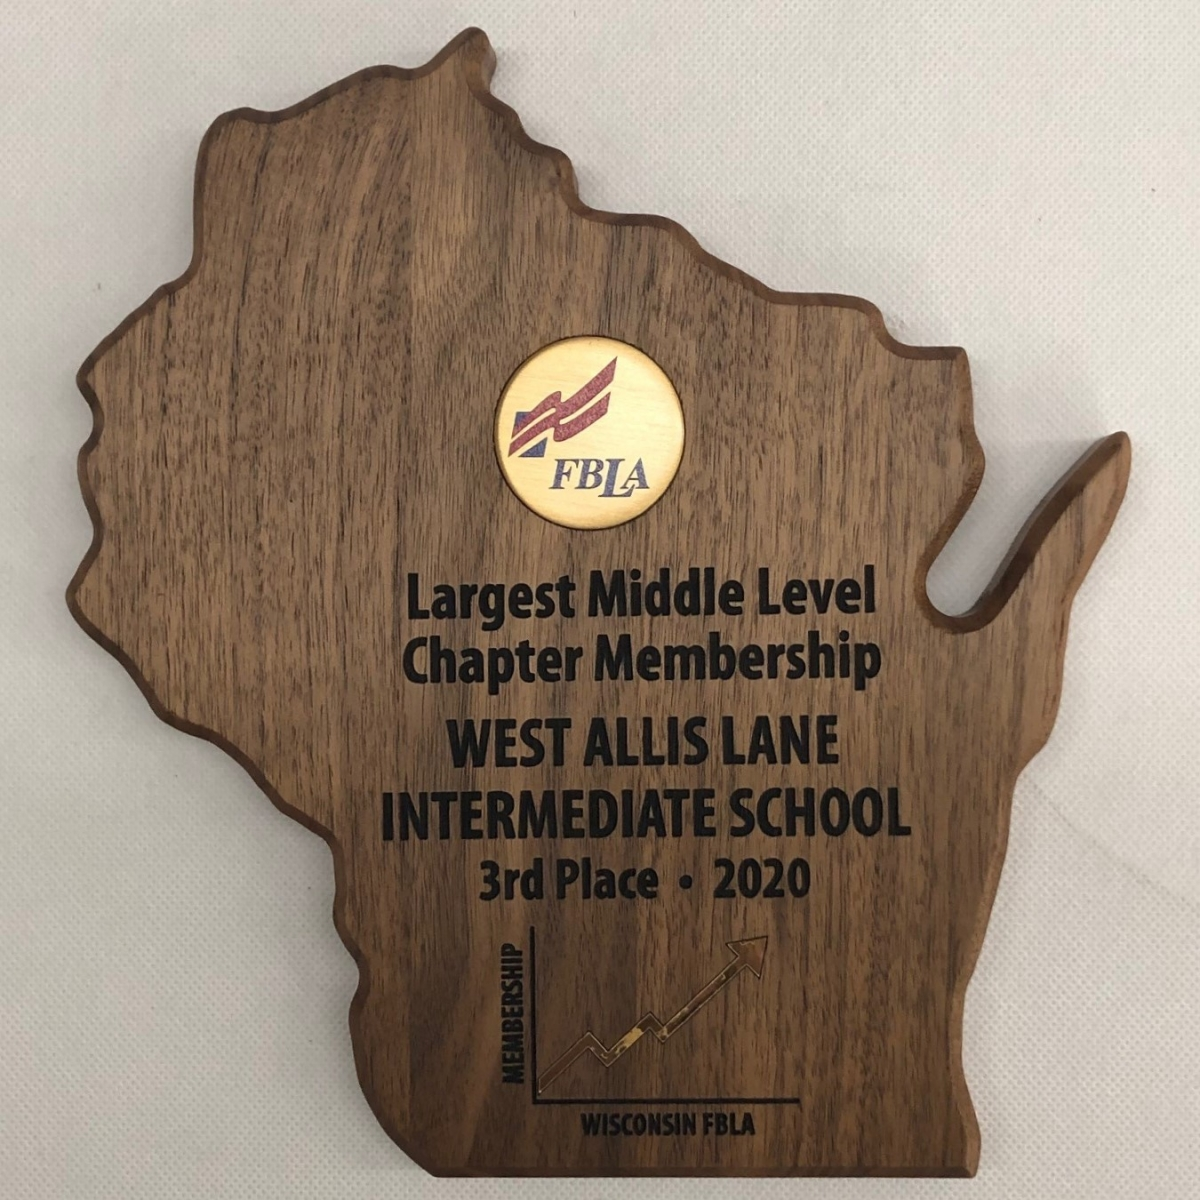 Largest Middle Level Chapter - West Allis Lane Intermediate